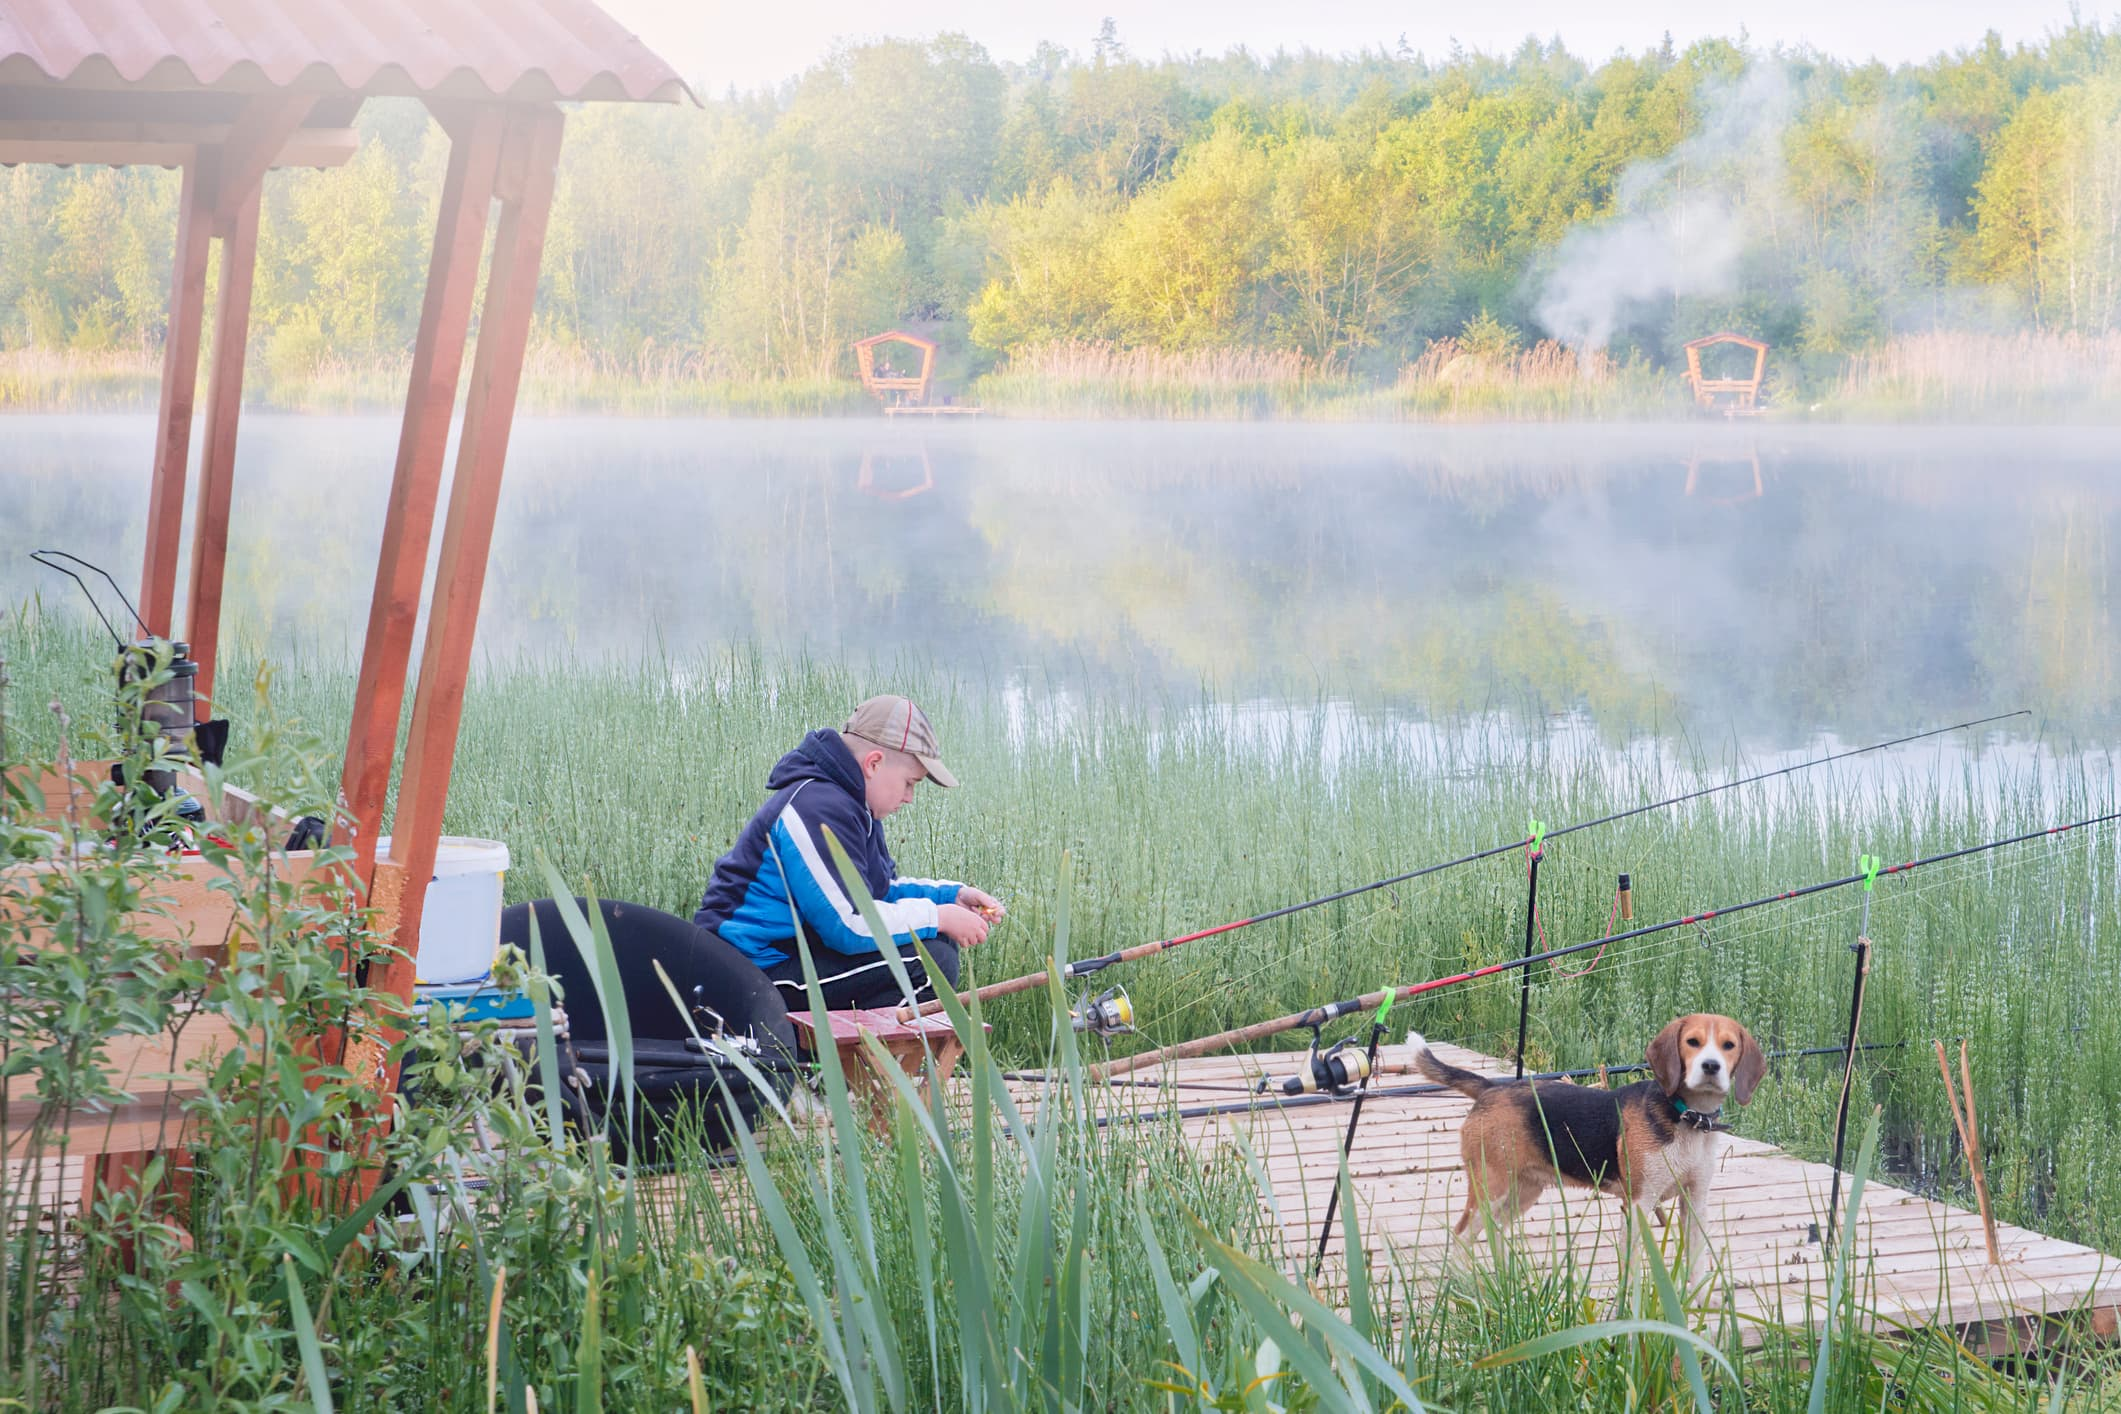 man and dog fishing on a dock